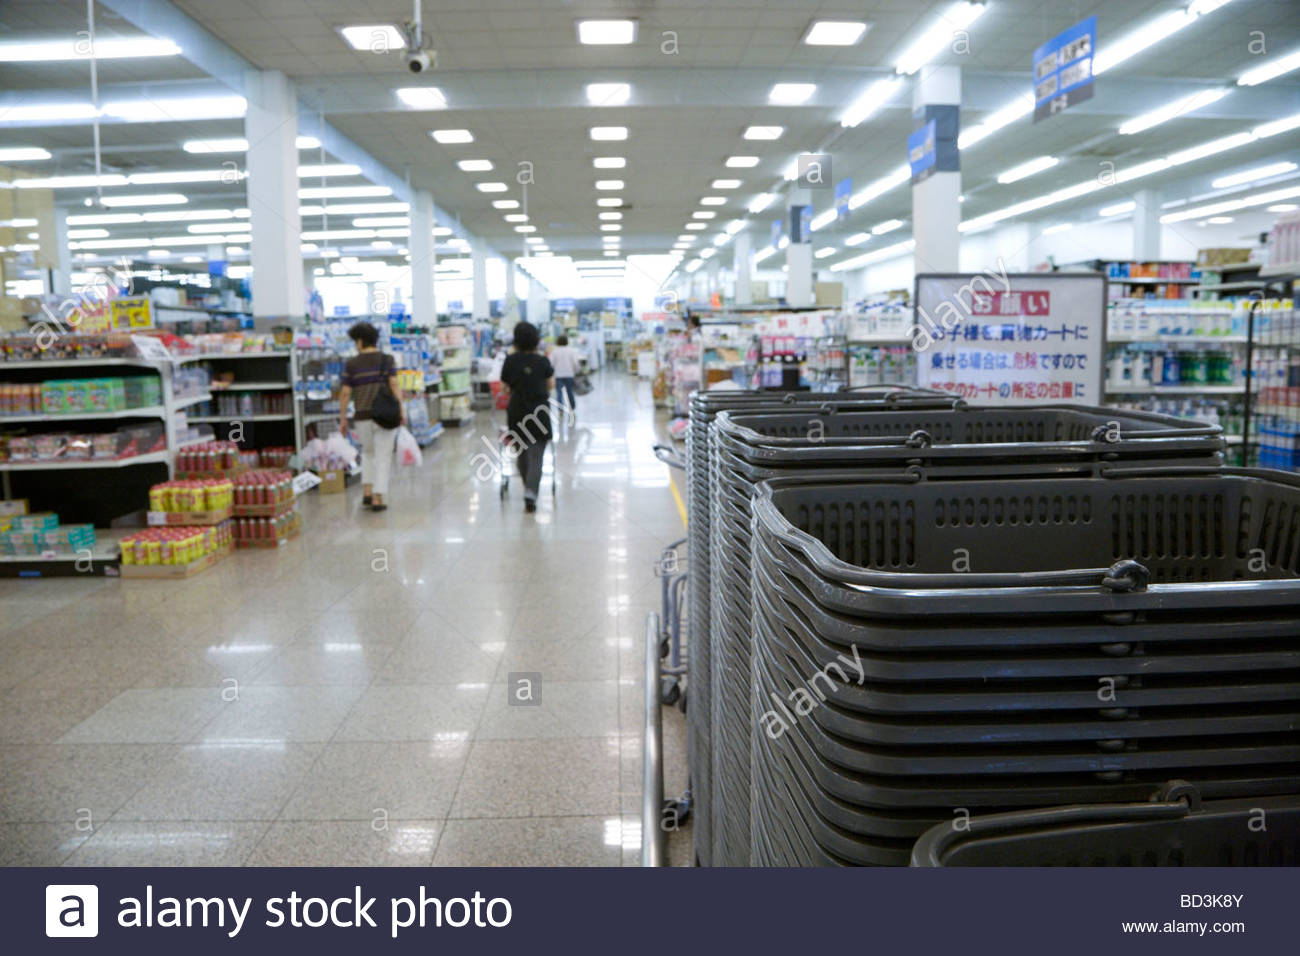 Japanese store with many shopping baskets at the entrance - Stock Image